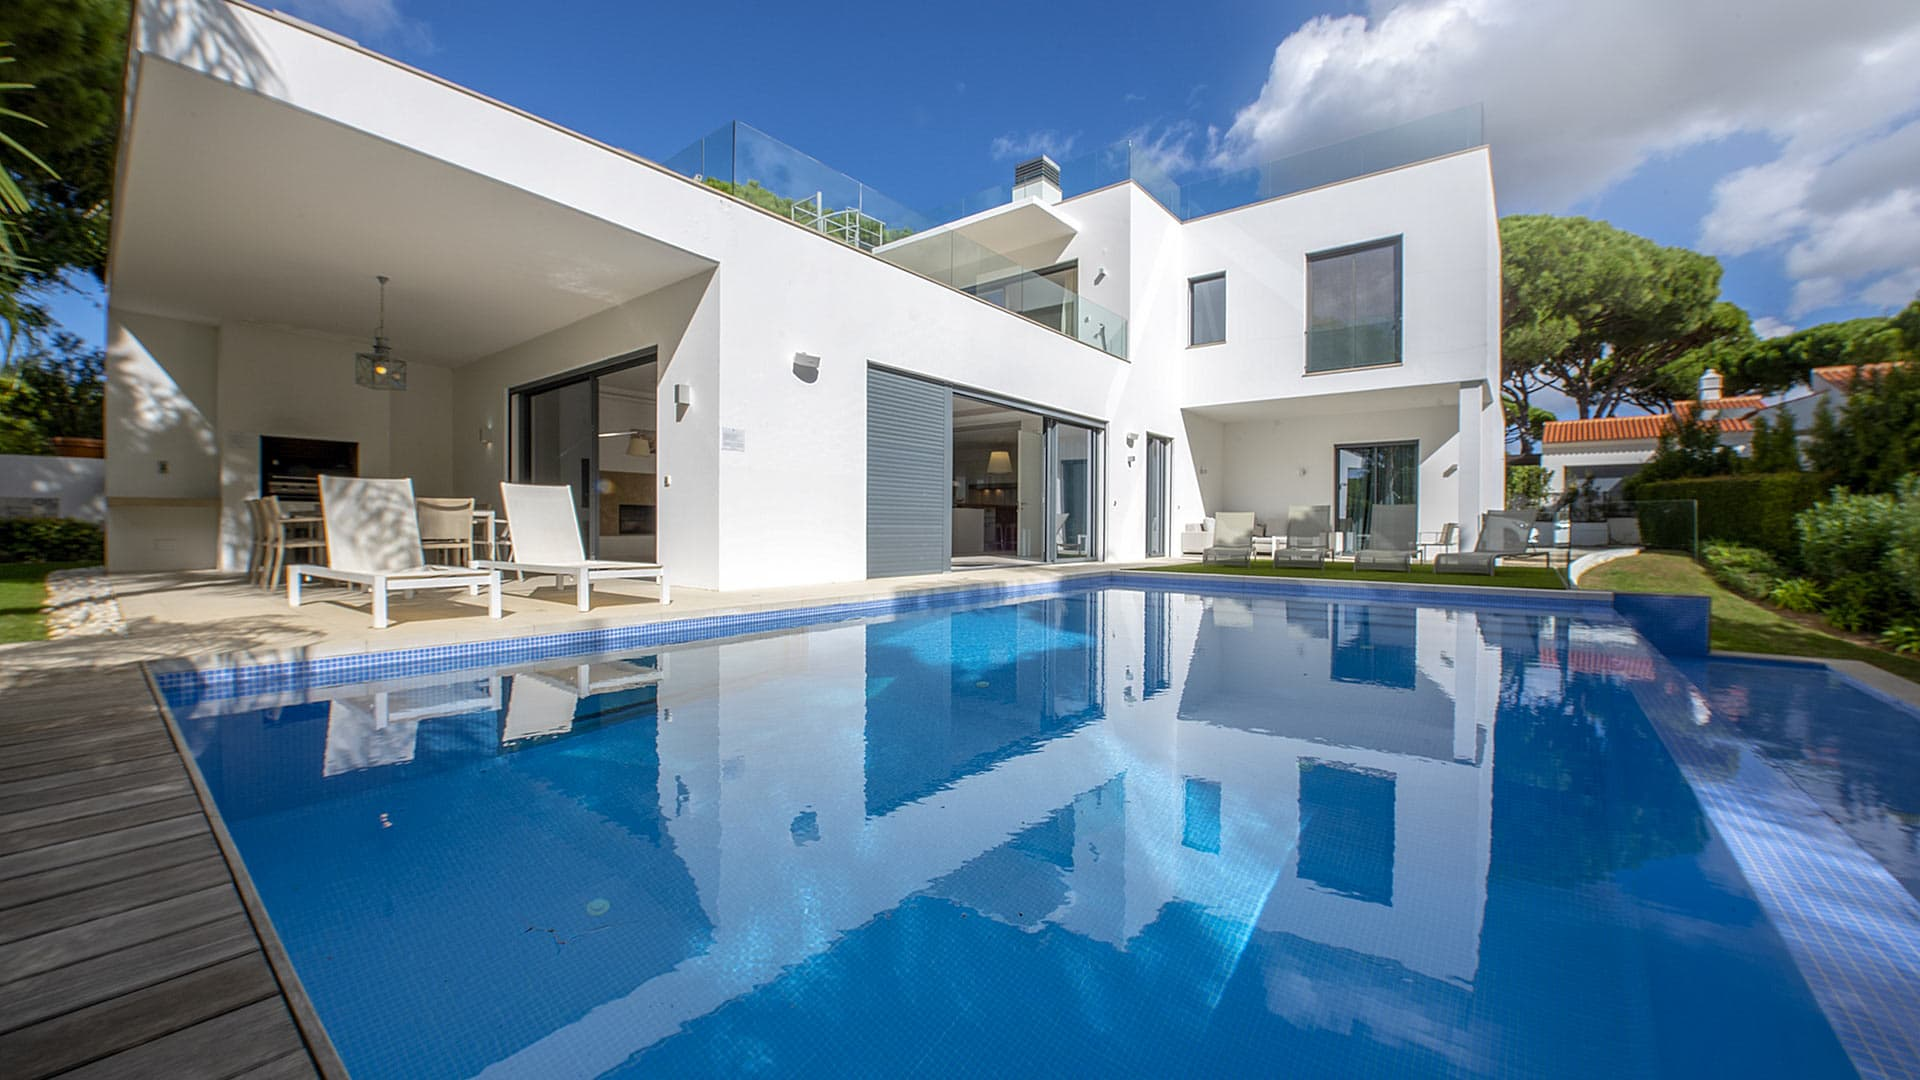 Villa Villa Cinka, Rental in Algarve